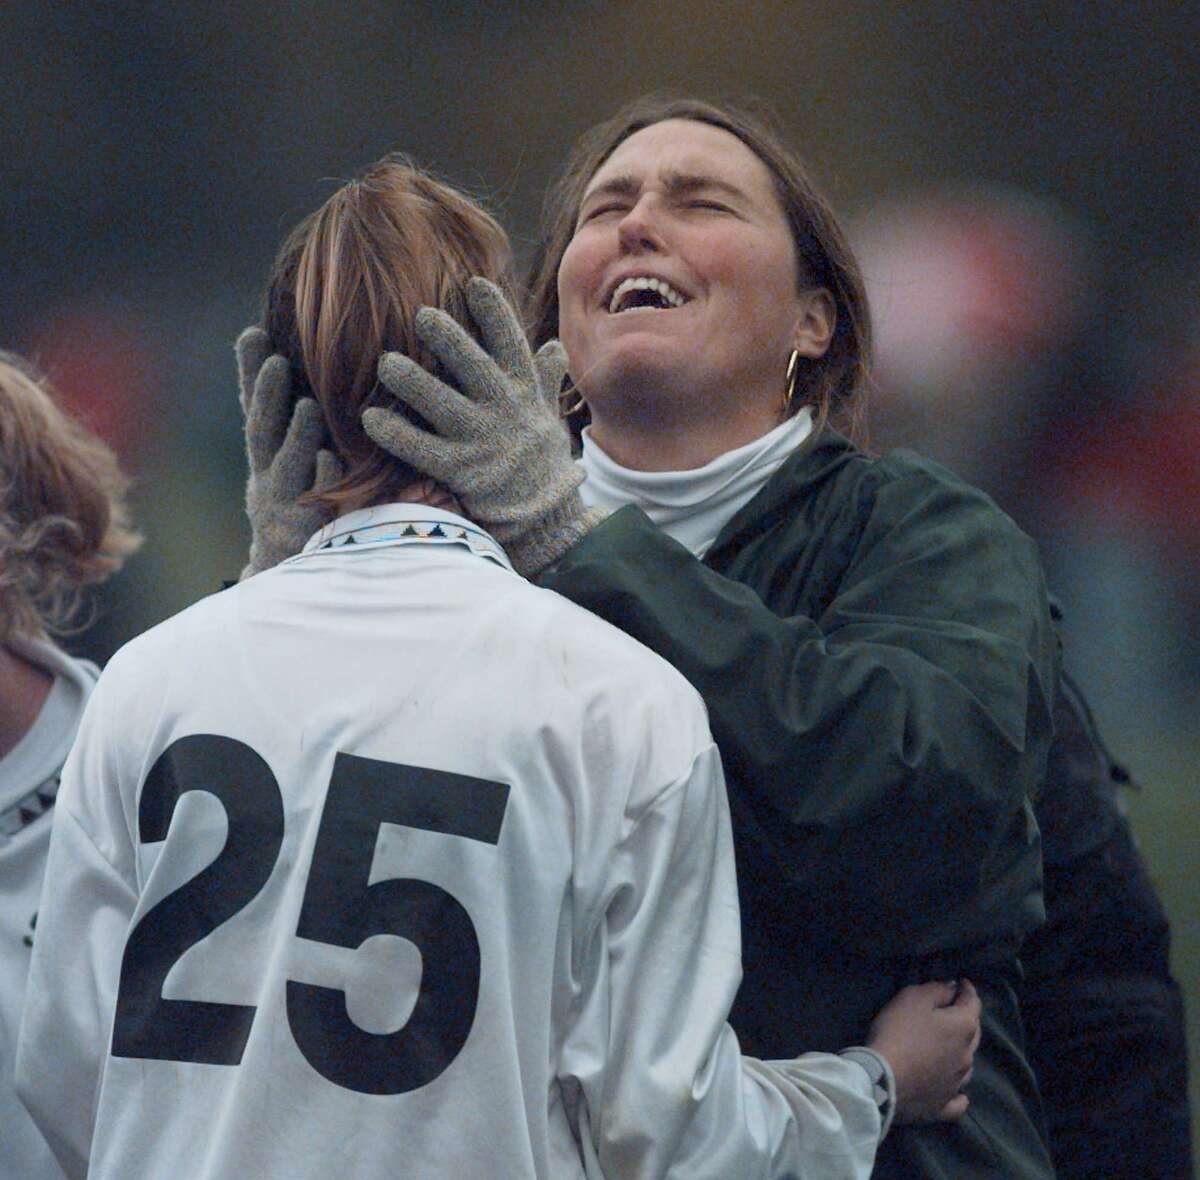 TIMES UNION PHOTO BY LUANNE M. FERRIS - SATURDAY, NOV. 1, 1997, CLIFTON PARK, CLIFTON COMMONS SOCCER FIELD. Shenendehowa Assistant Coach Betsy Drambour celebrates with Shenendehowa's Erin Lilly after Shenendehowa won the Section II, Class A girls soccer finals1-0 over Niskayuna.